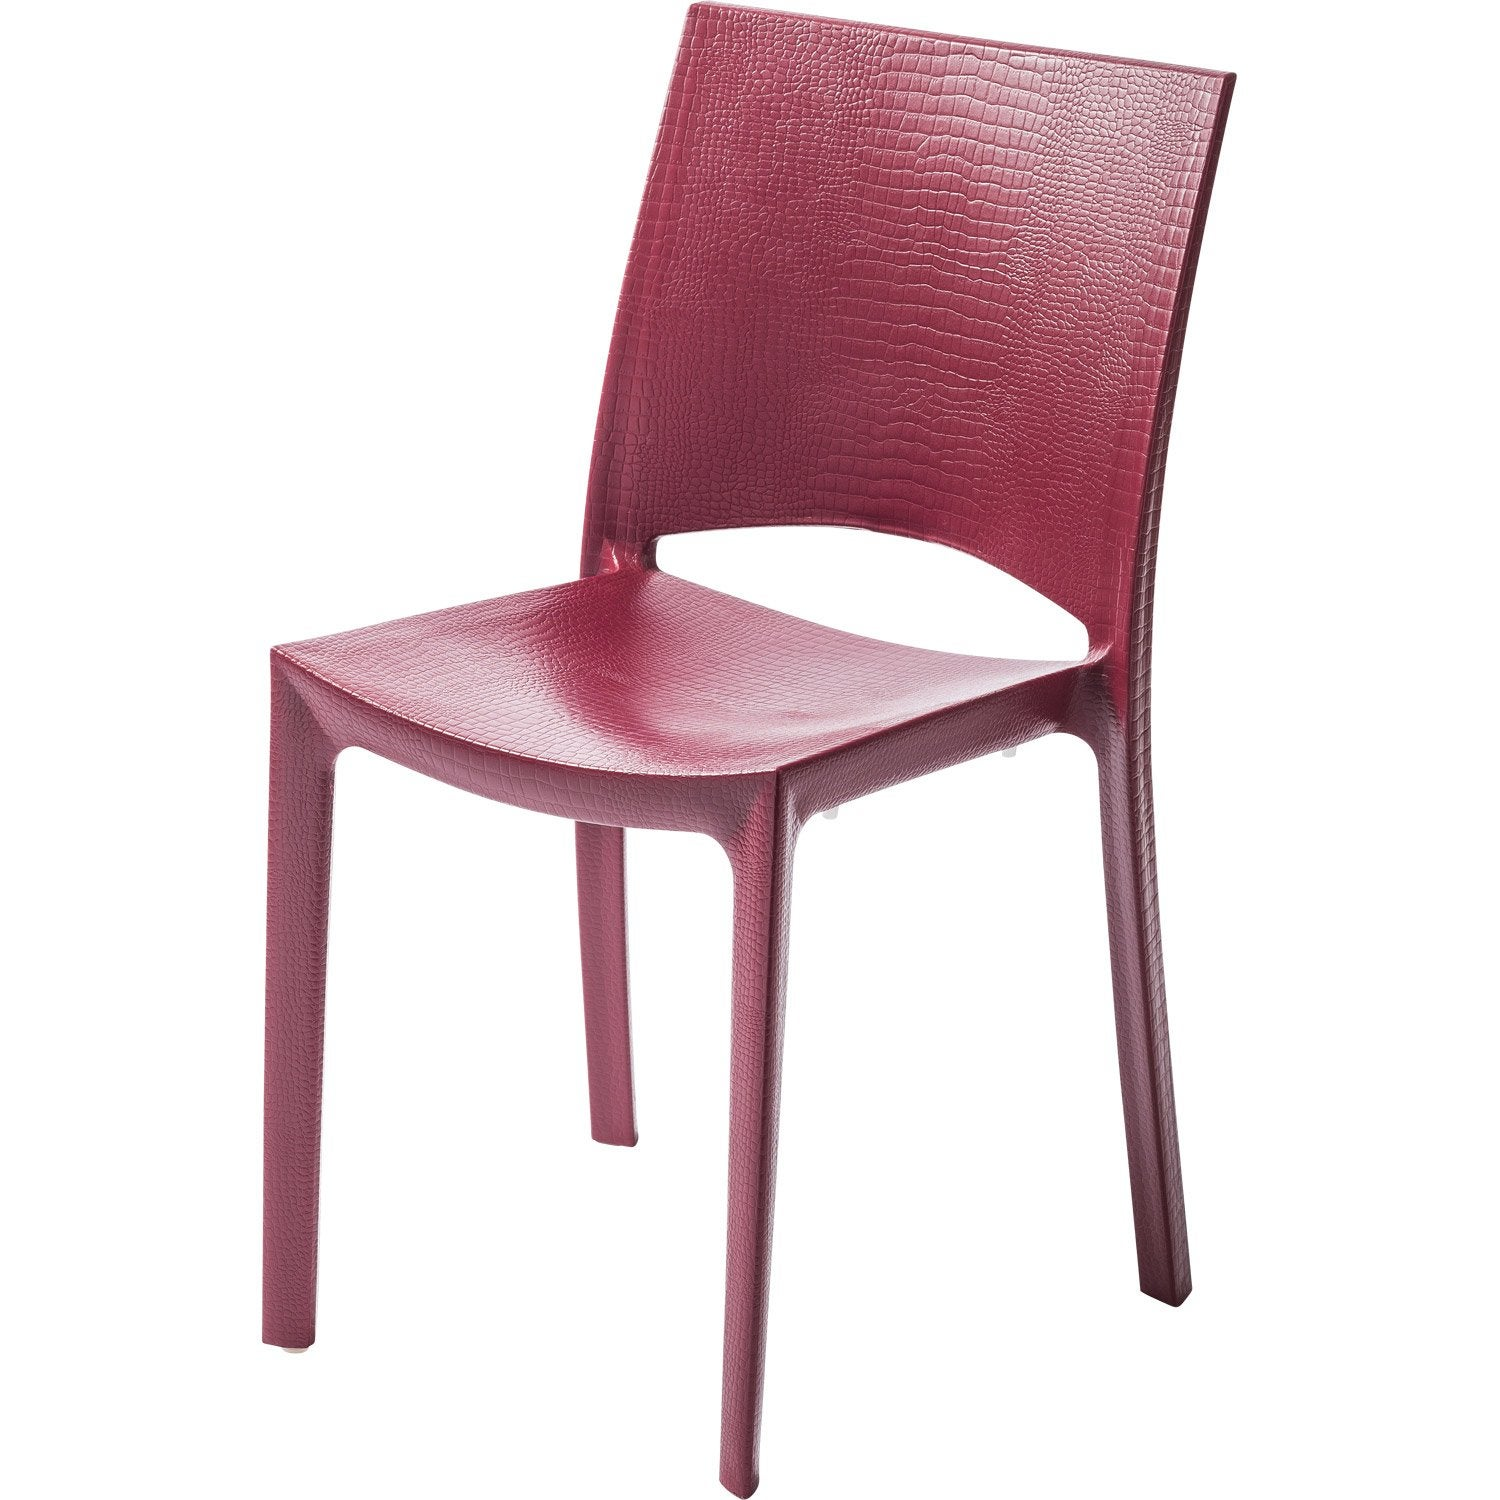 Chaise de jardin en r sine cocco rouge leroy merlin for Chaise rouge